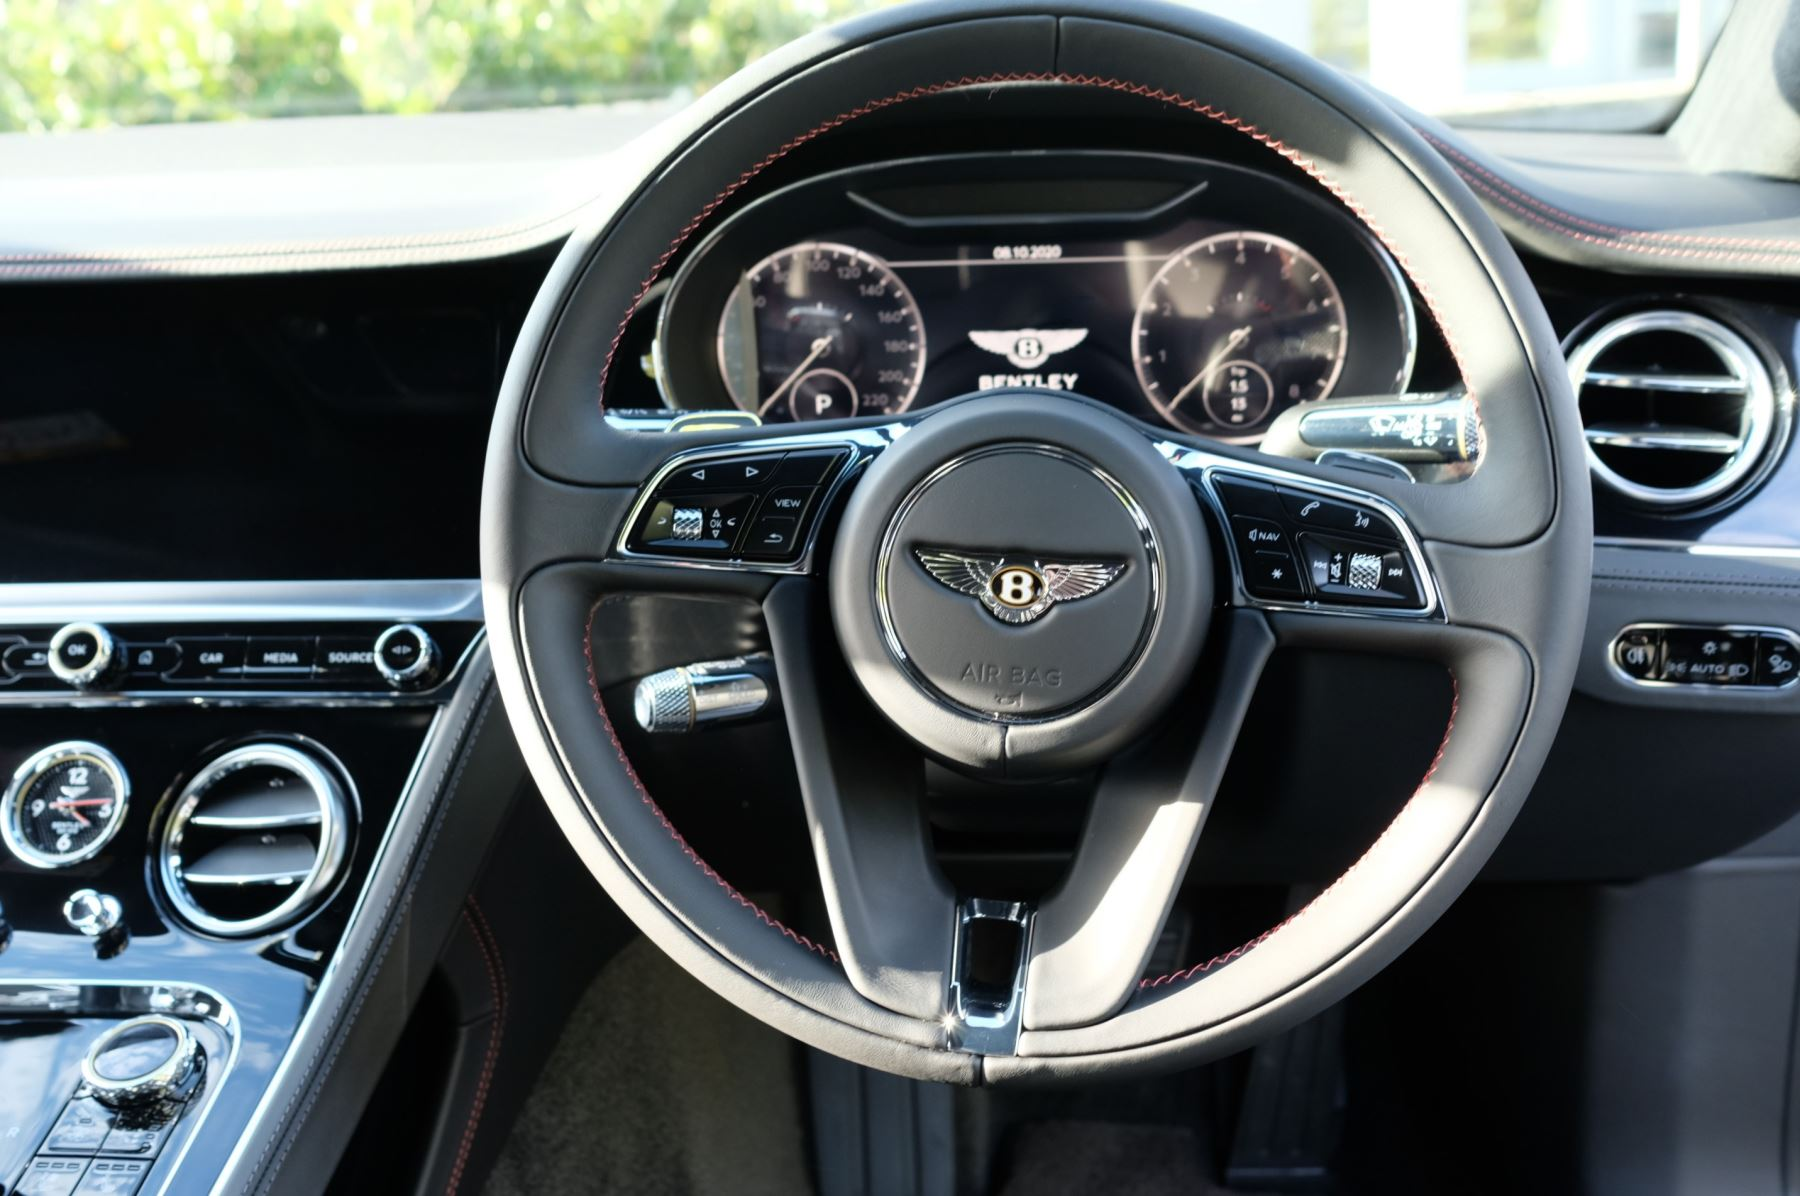 Bentley Continental GT 4.0 V8 2dr Auto [City+Touring Spec] image 15